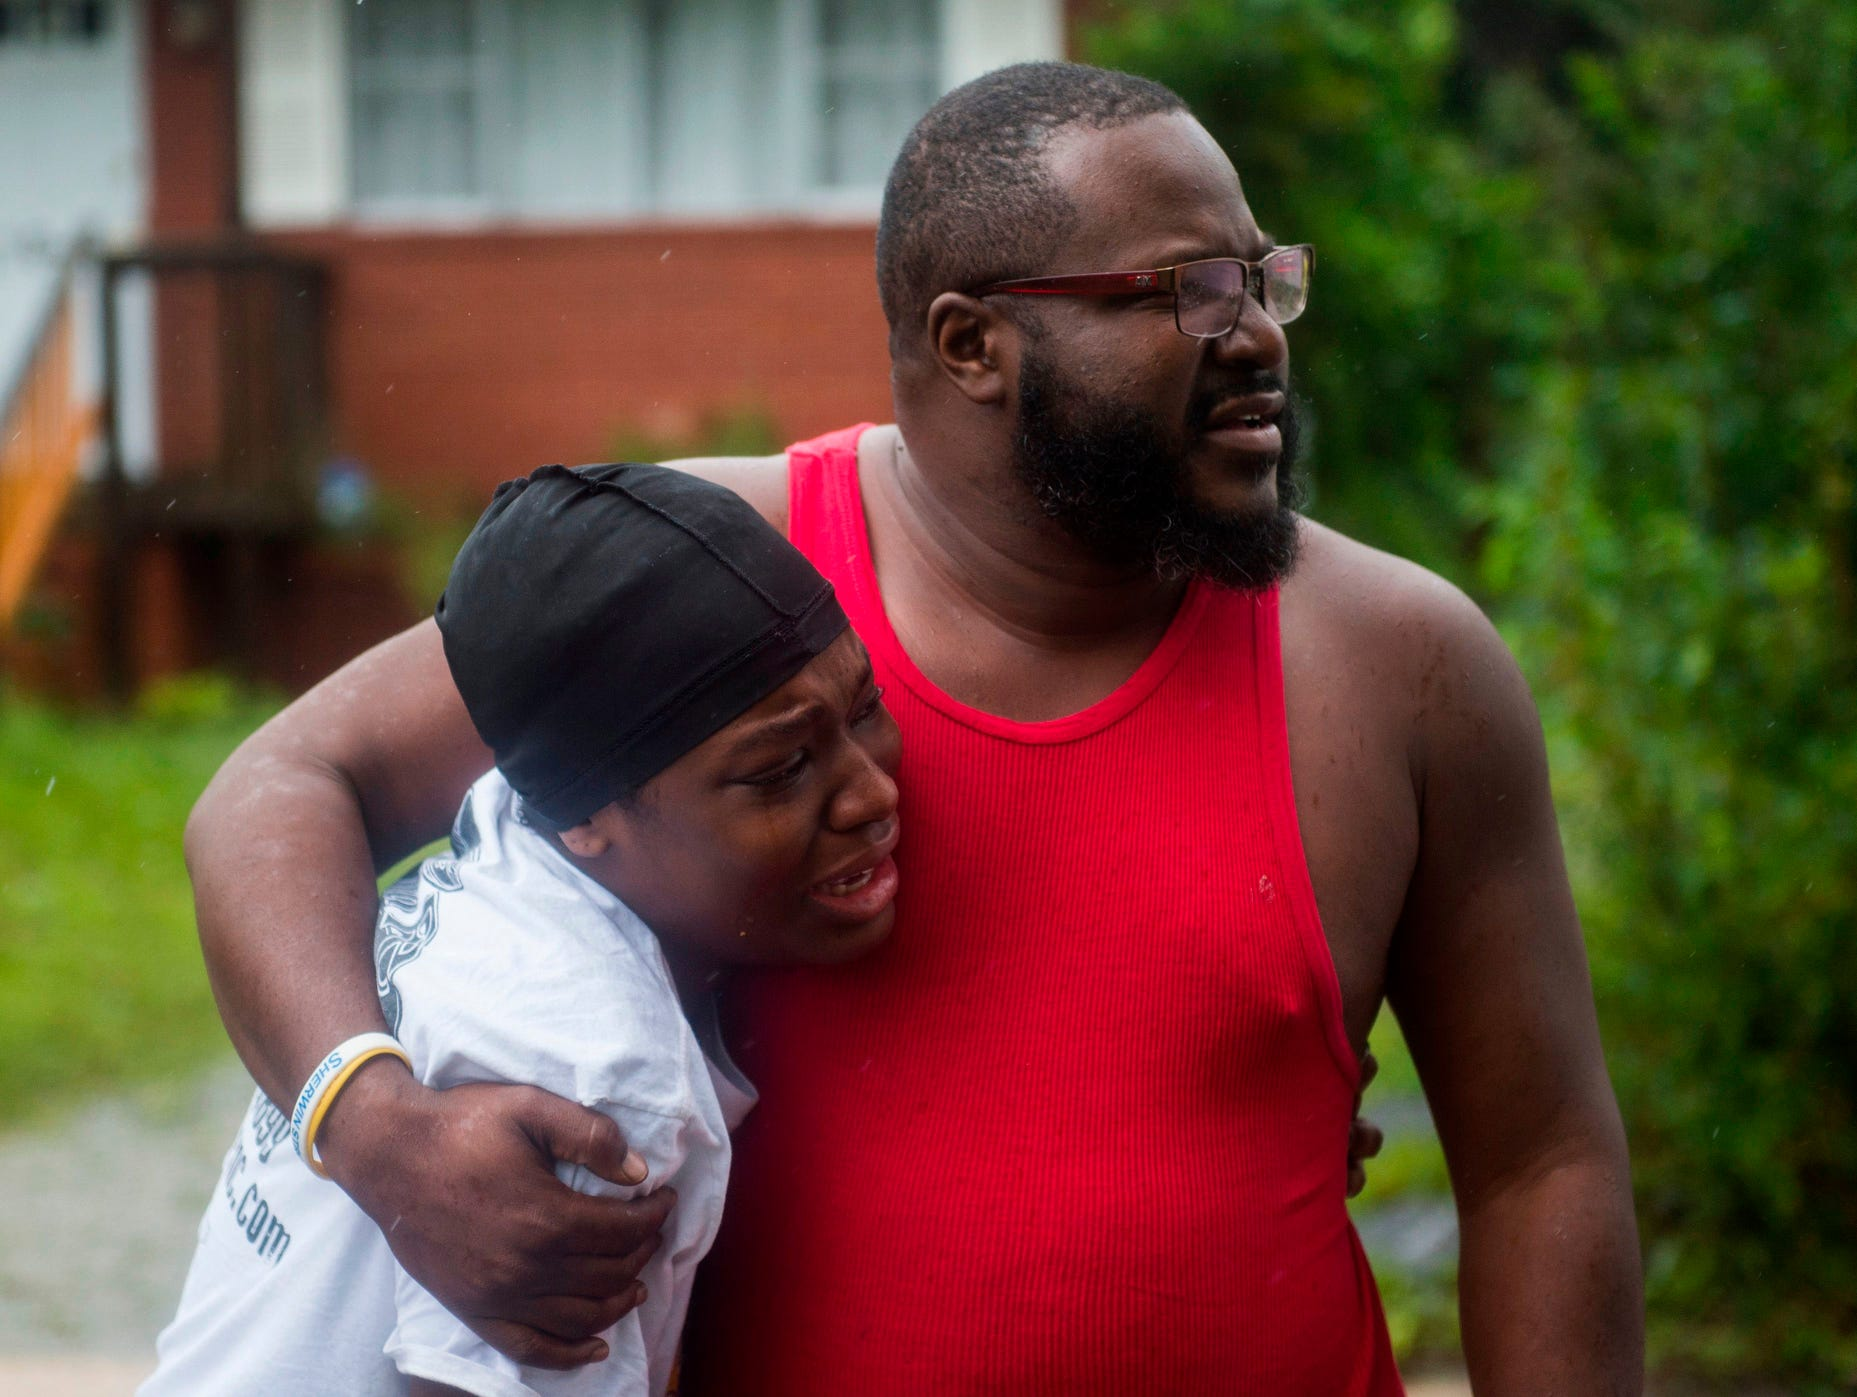 A father and daughter learn that friends were injured in a house that a tree fell on during landfall of Hurricane Florence, in Wilmington, North Carolina on Sept.14, 2018. - Florence smashed into the US East Coast Friday with howling winds, torrential rains and life-threatening storm surges as emergency crews scrambled to rescue hundreds of people stranded in their homes by flood waters.